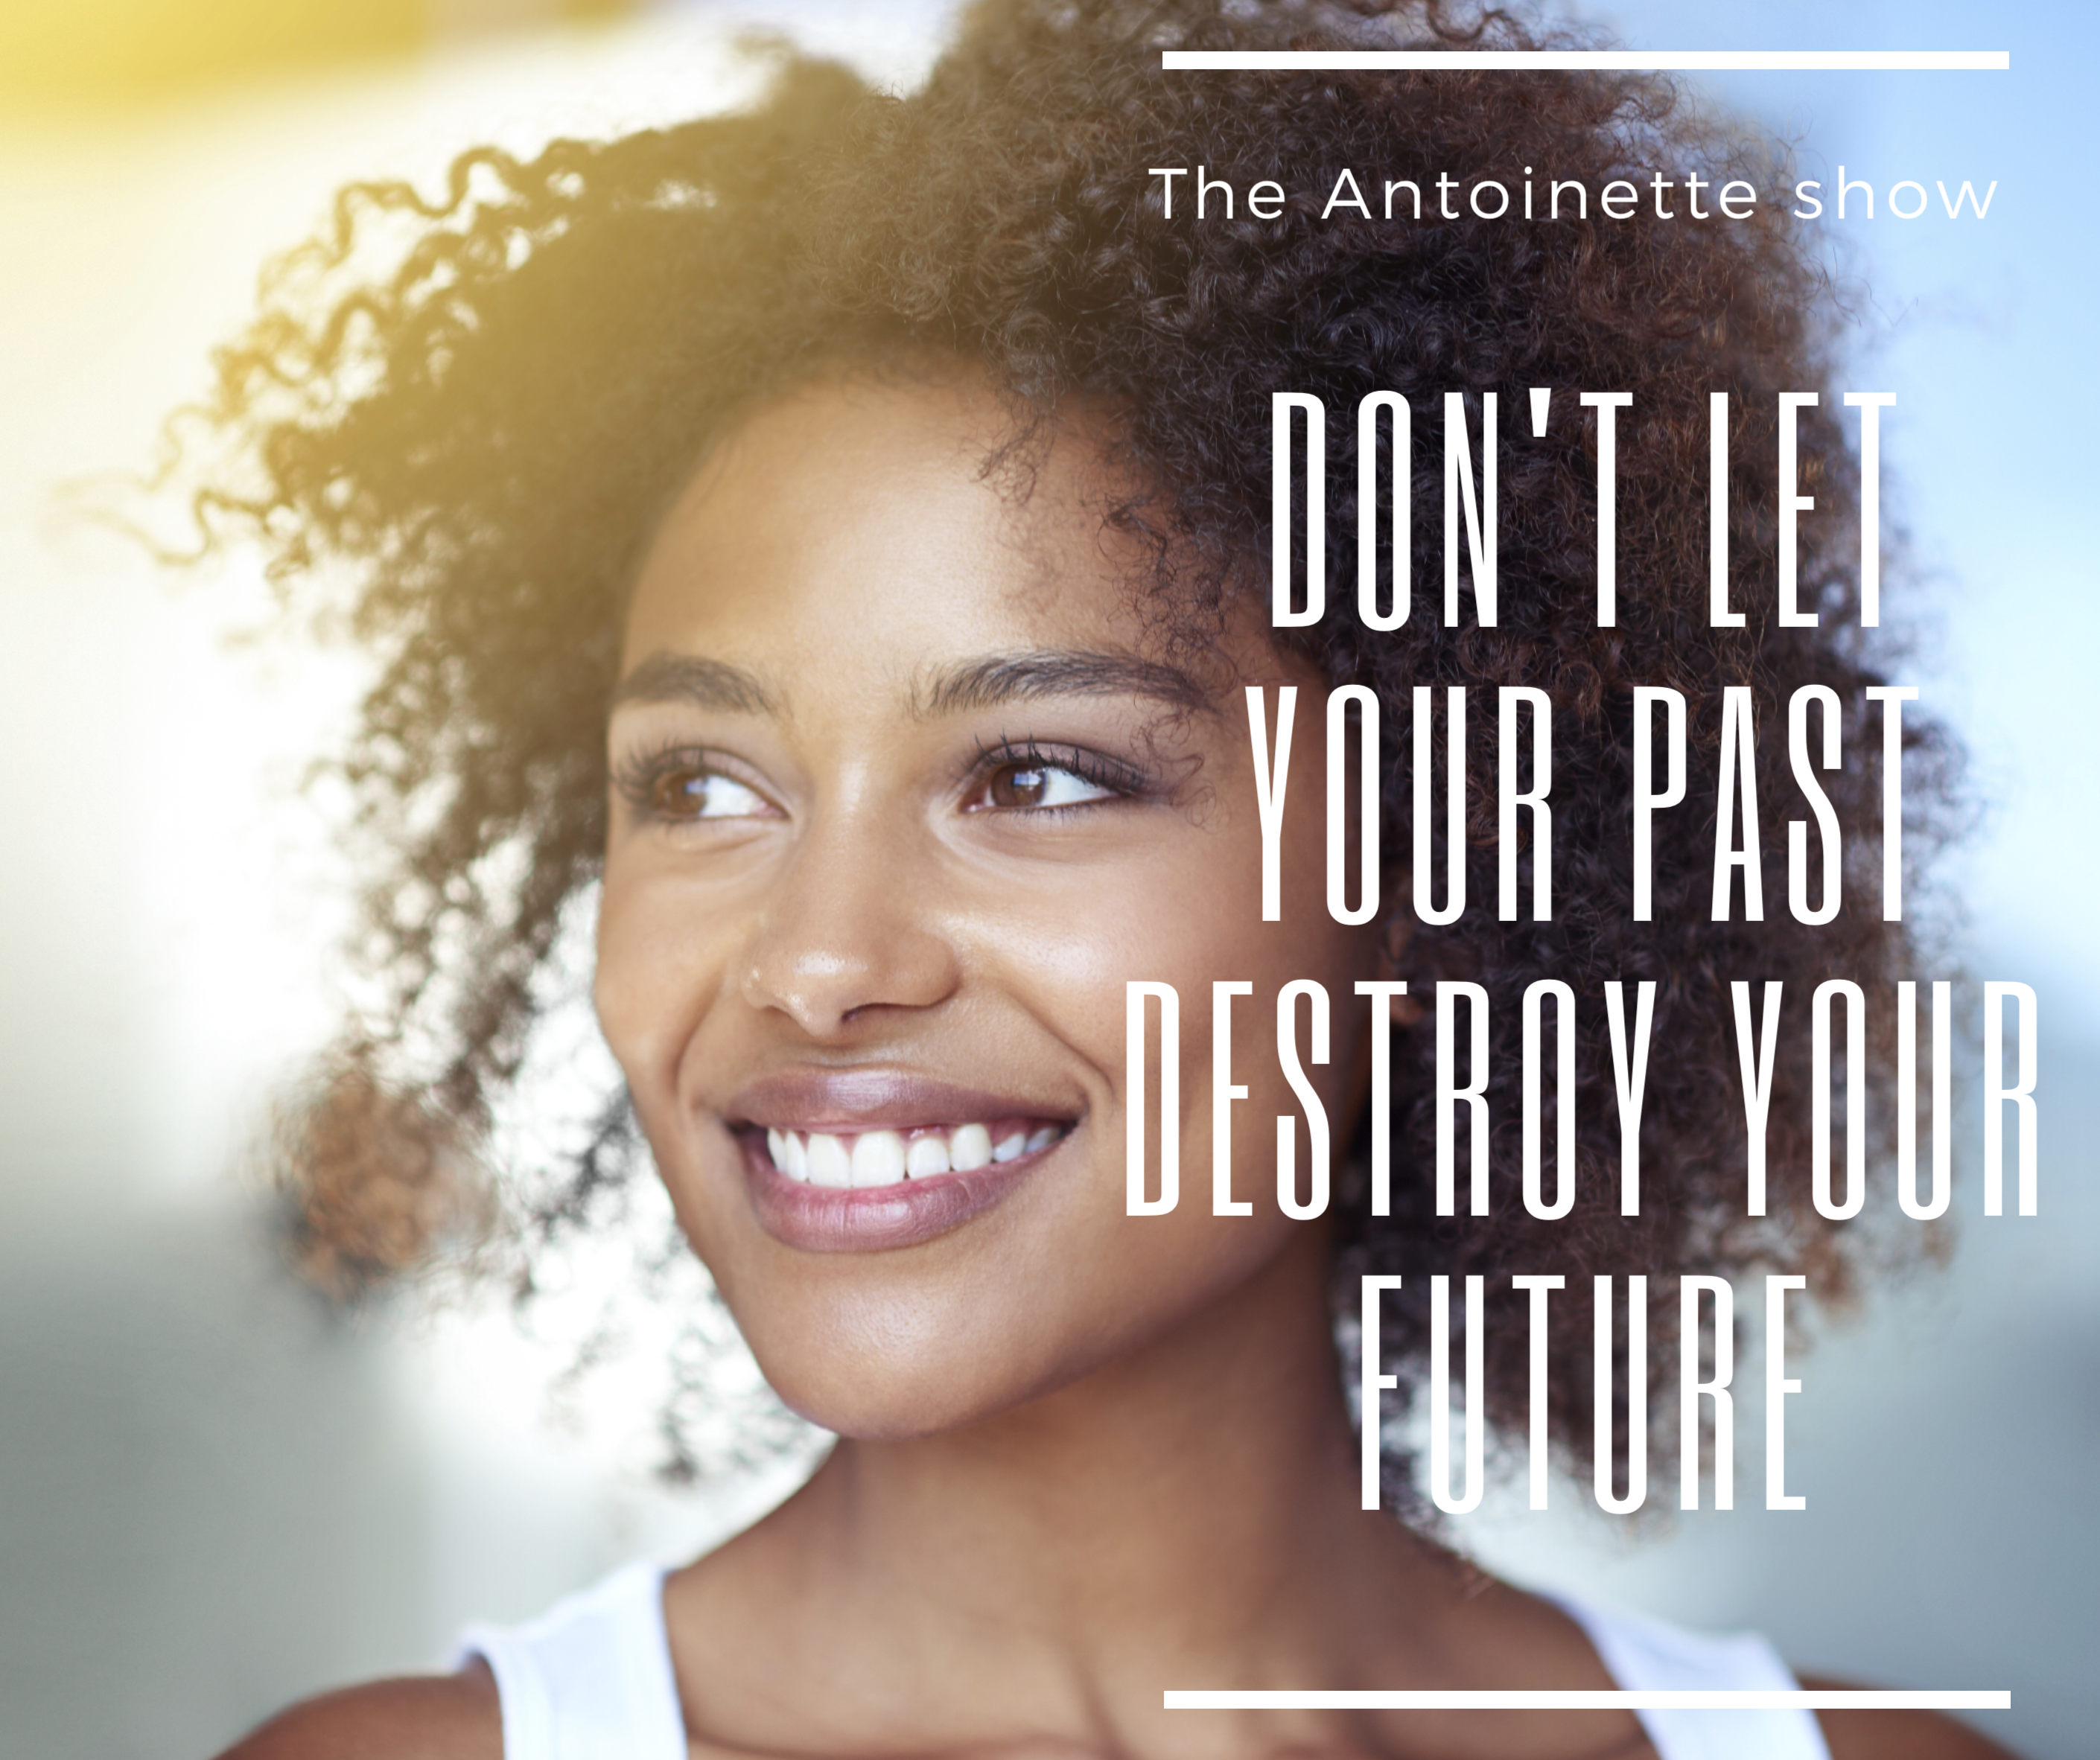 Don't let your past destroy your future